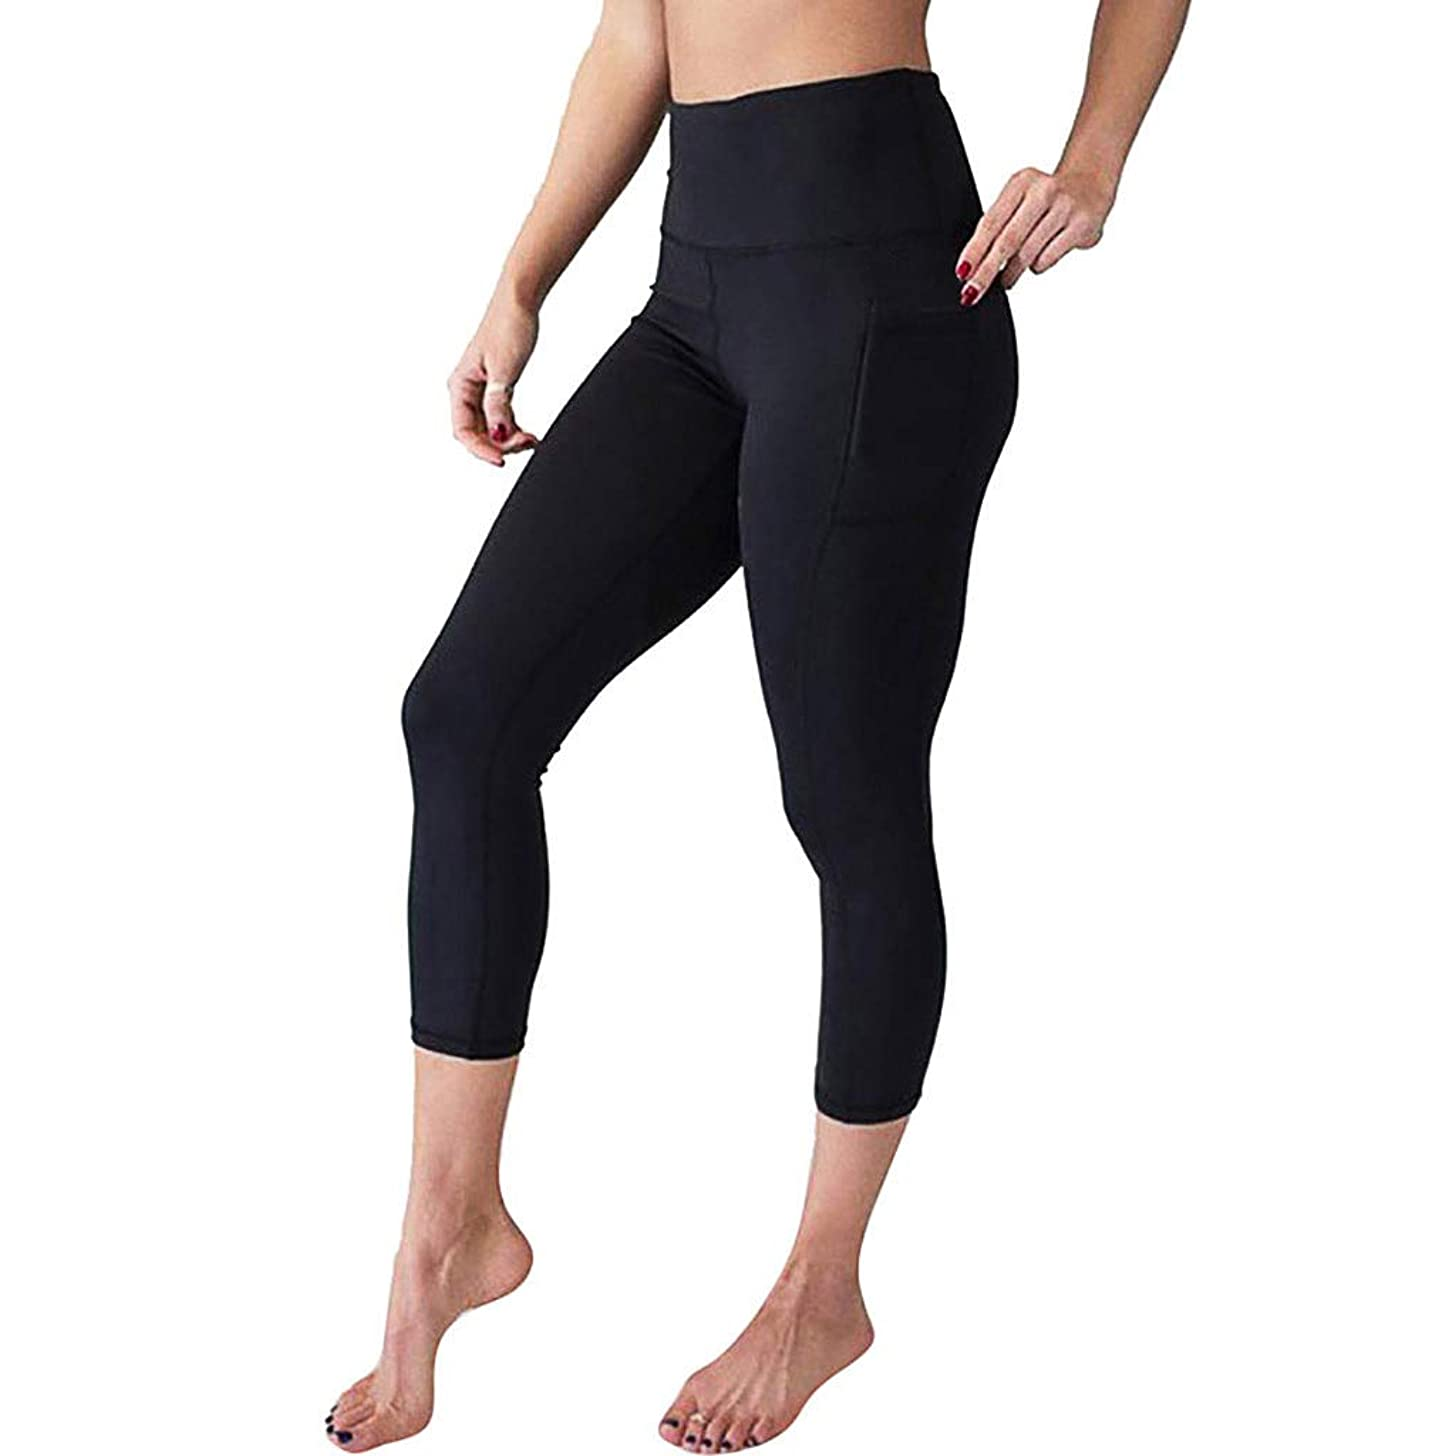 Womens Yoga Pants with Pockets Gibobby High Waist Yoga Leggings Tummy Control Workout Running Leggings for Sports Gym